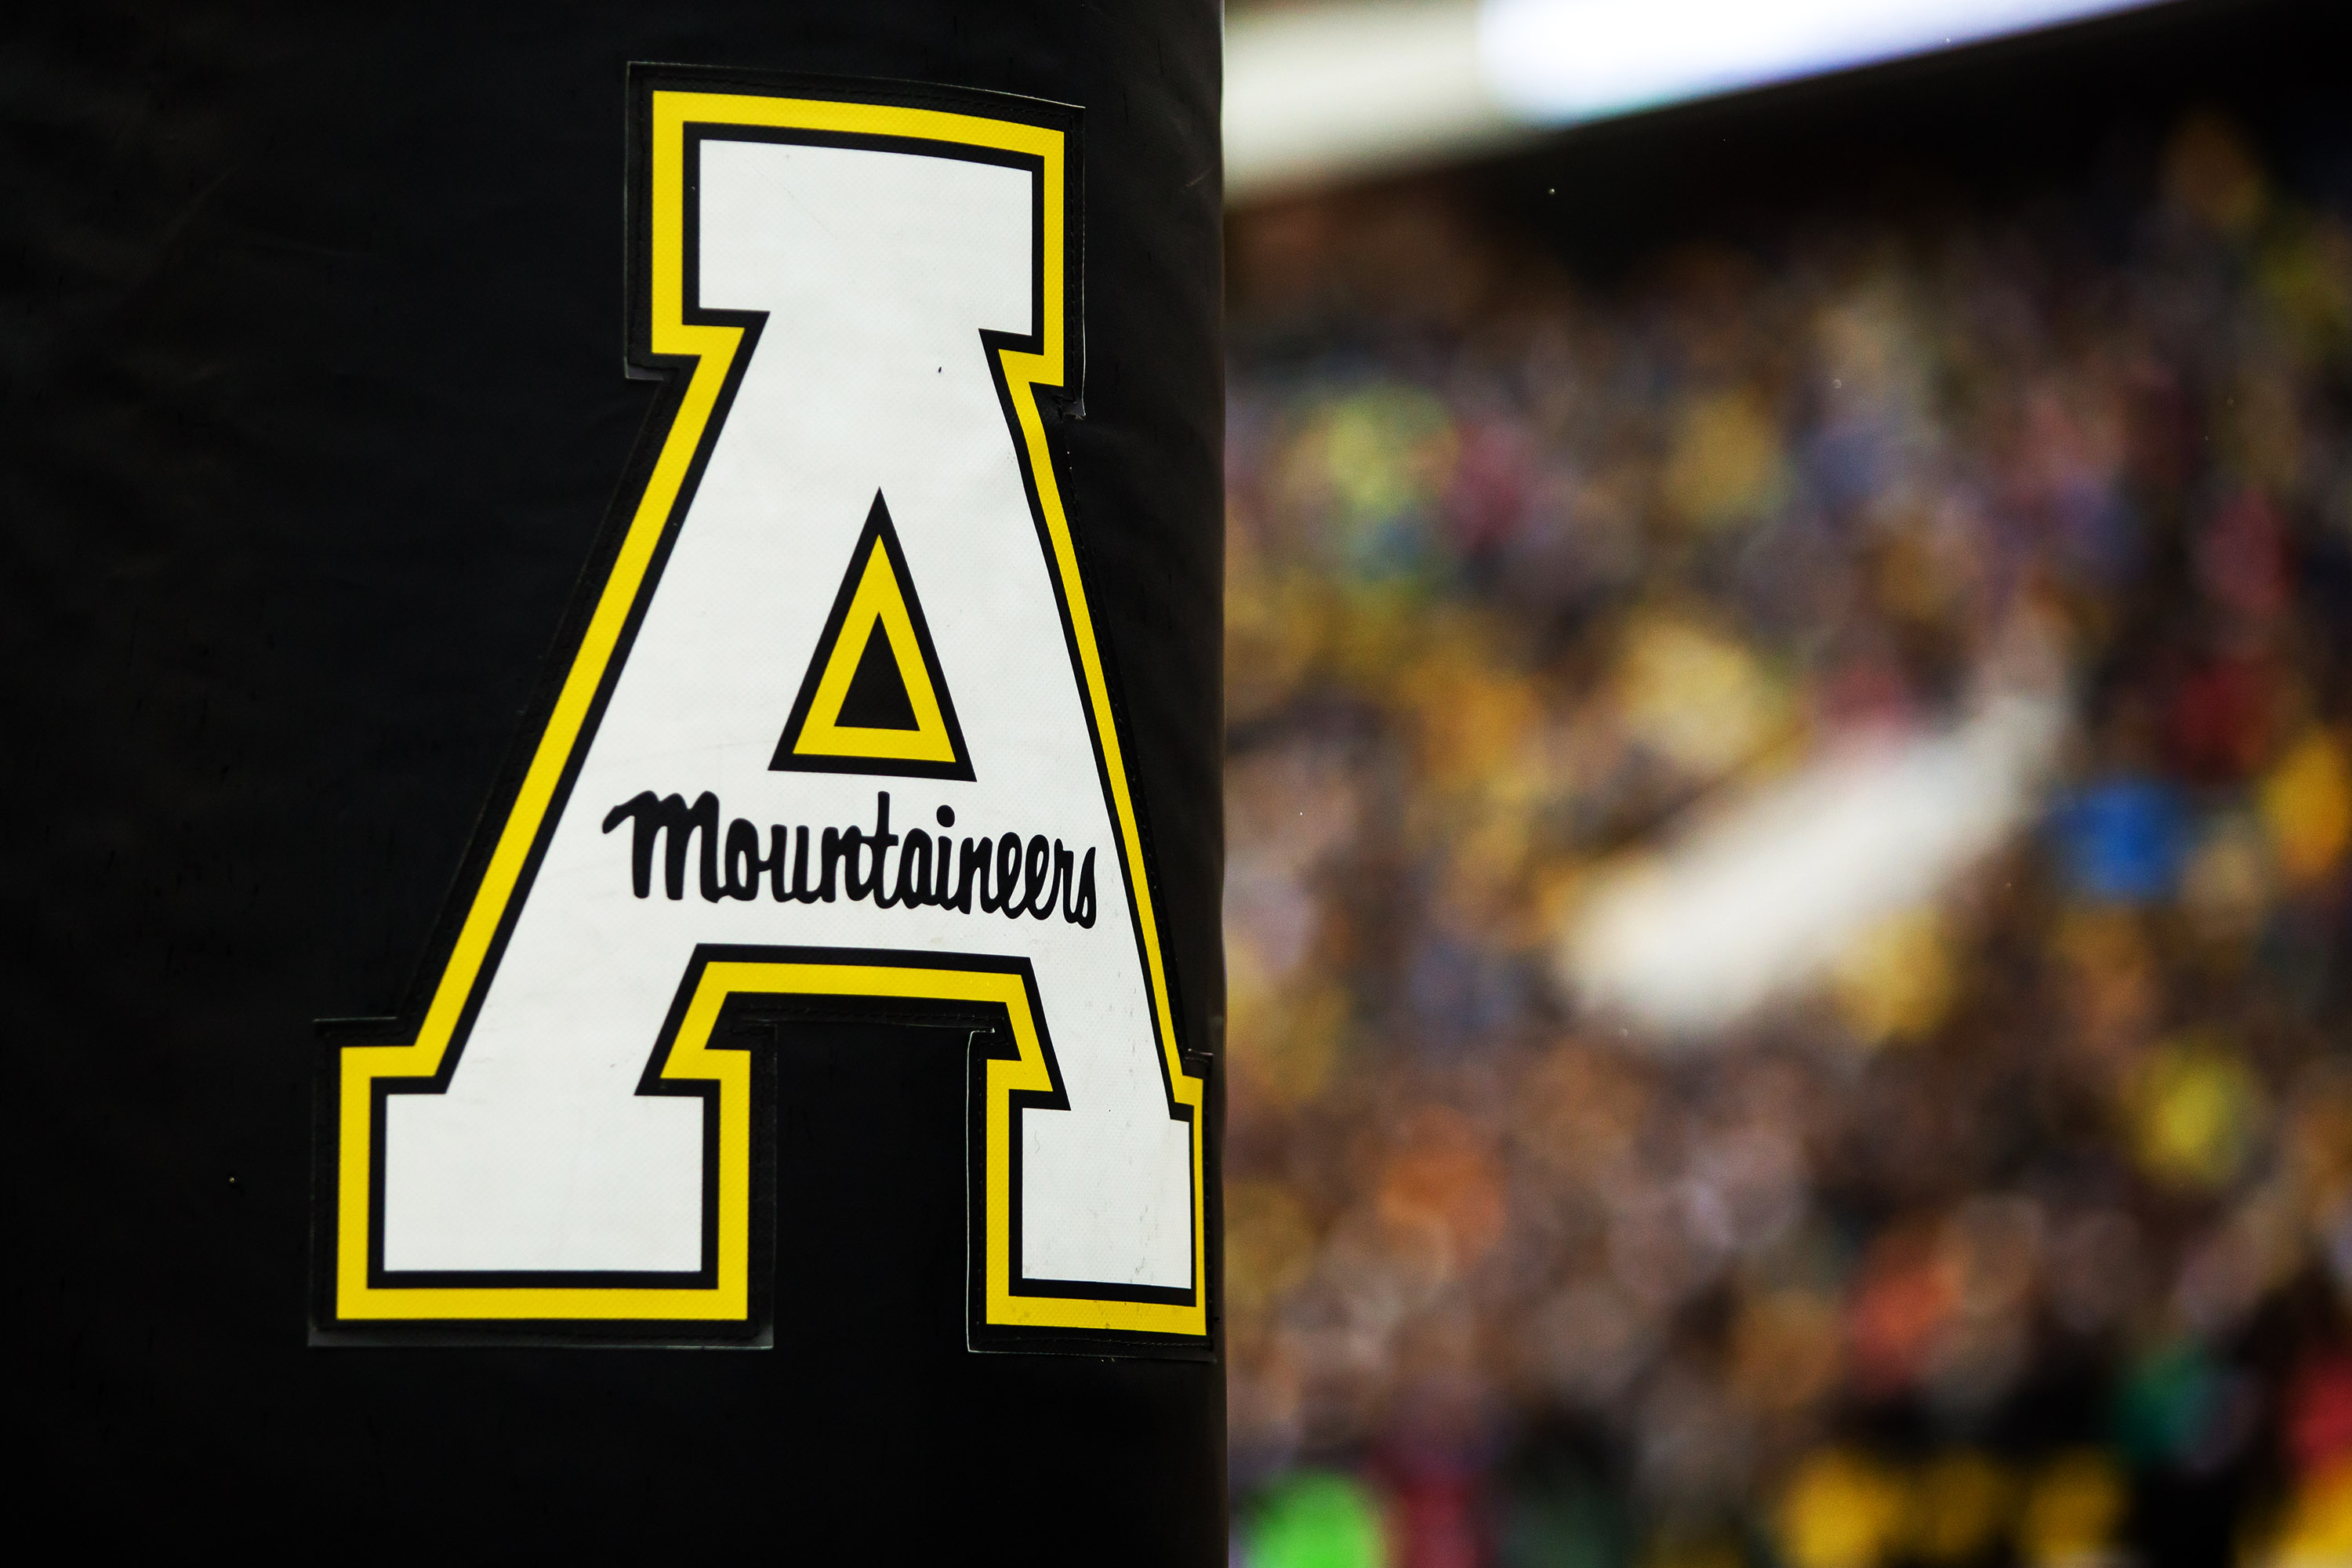 The Appalachian State University logo on the goalpost during a game on October 19, 2019.